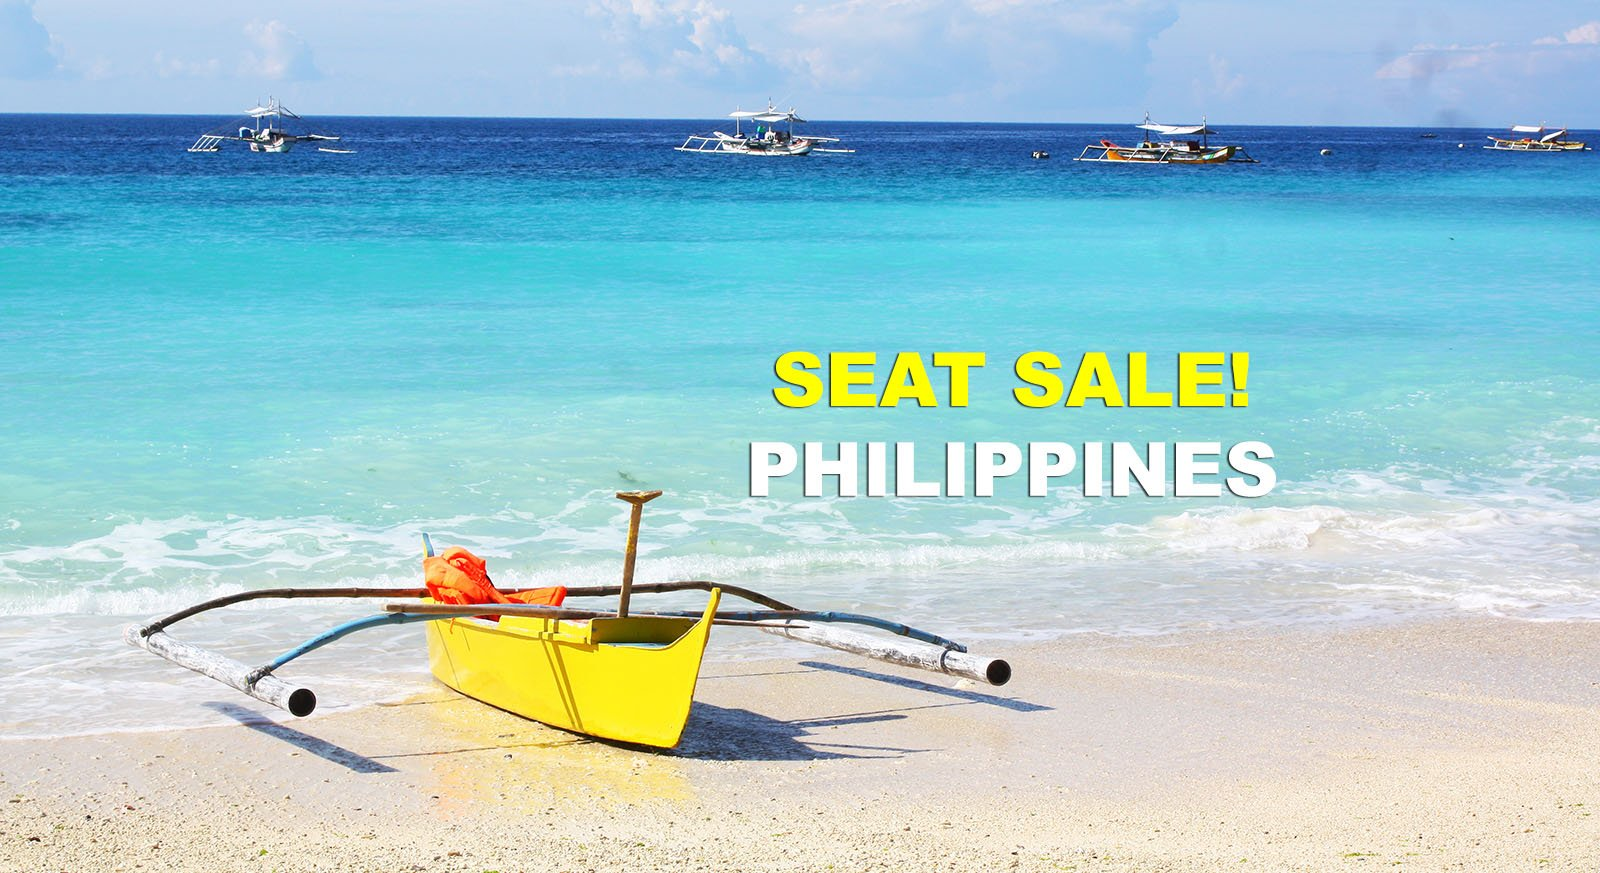 Philippines Air Asia's 18th Anniversary Seat Sale